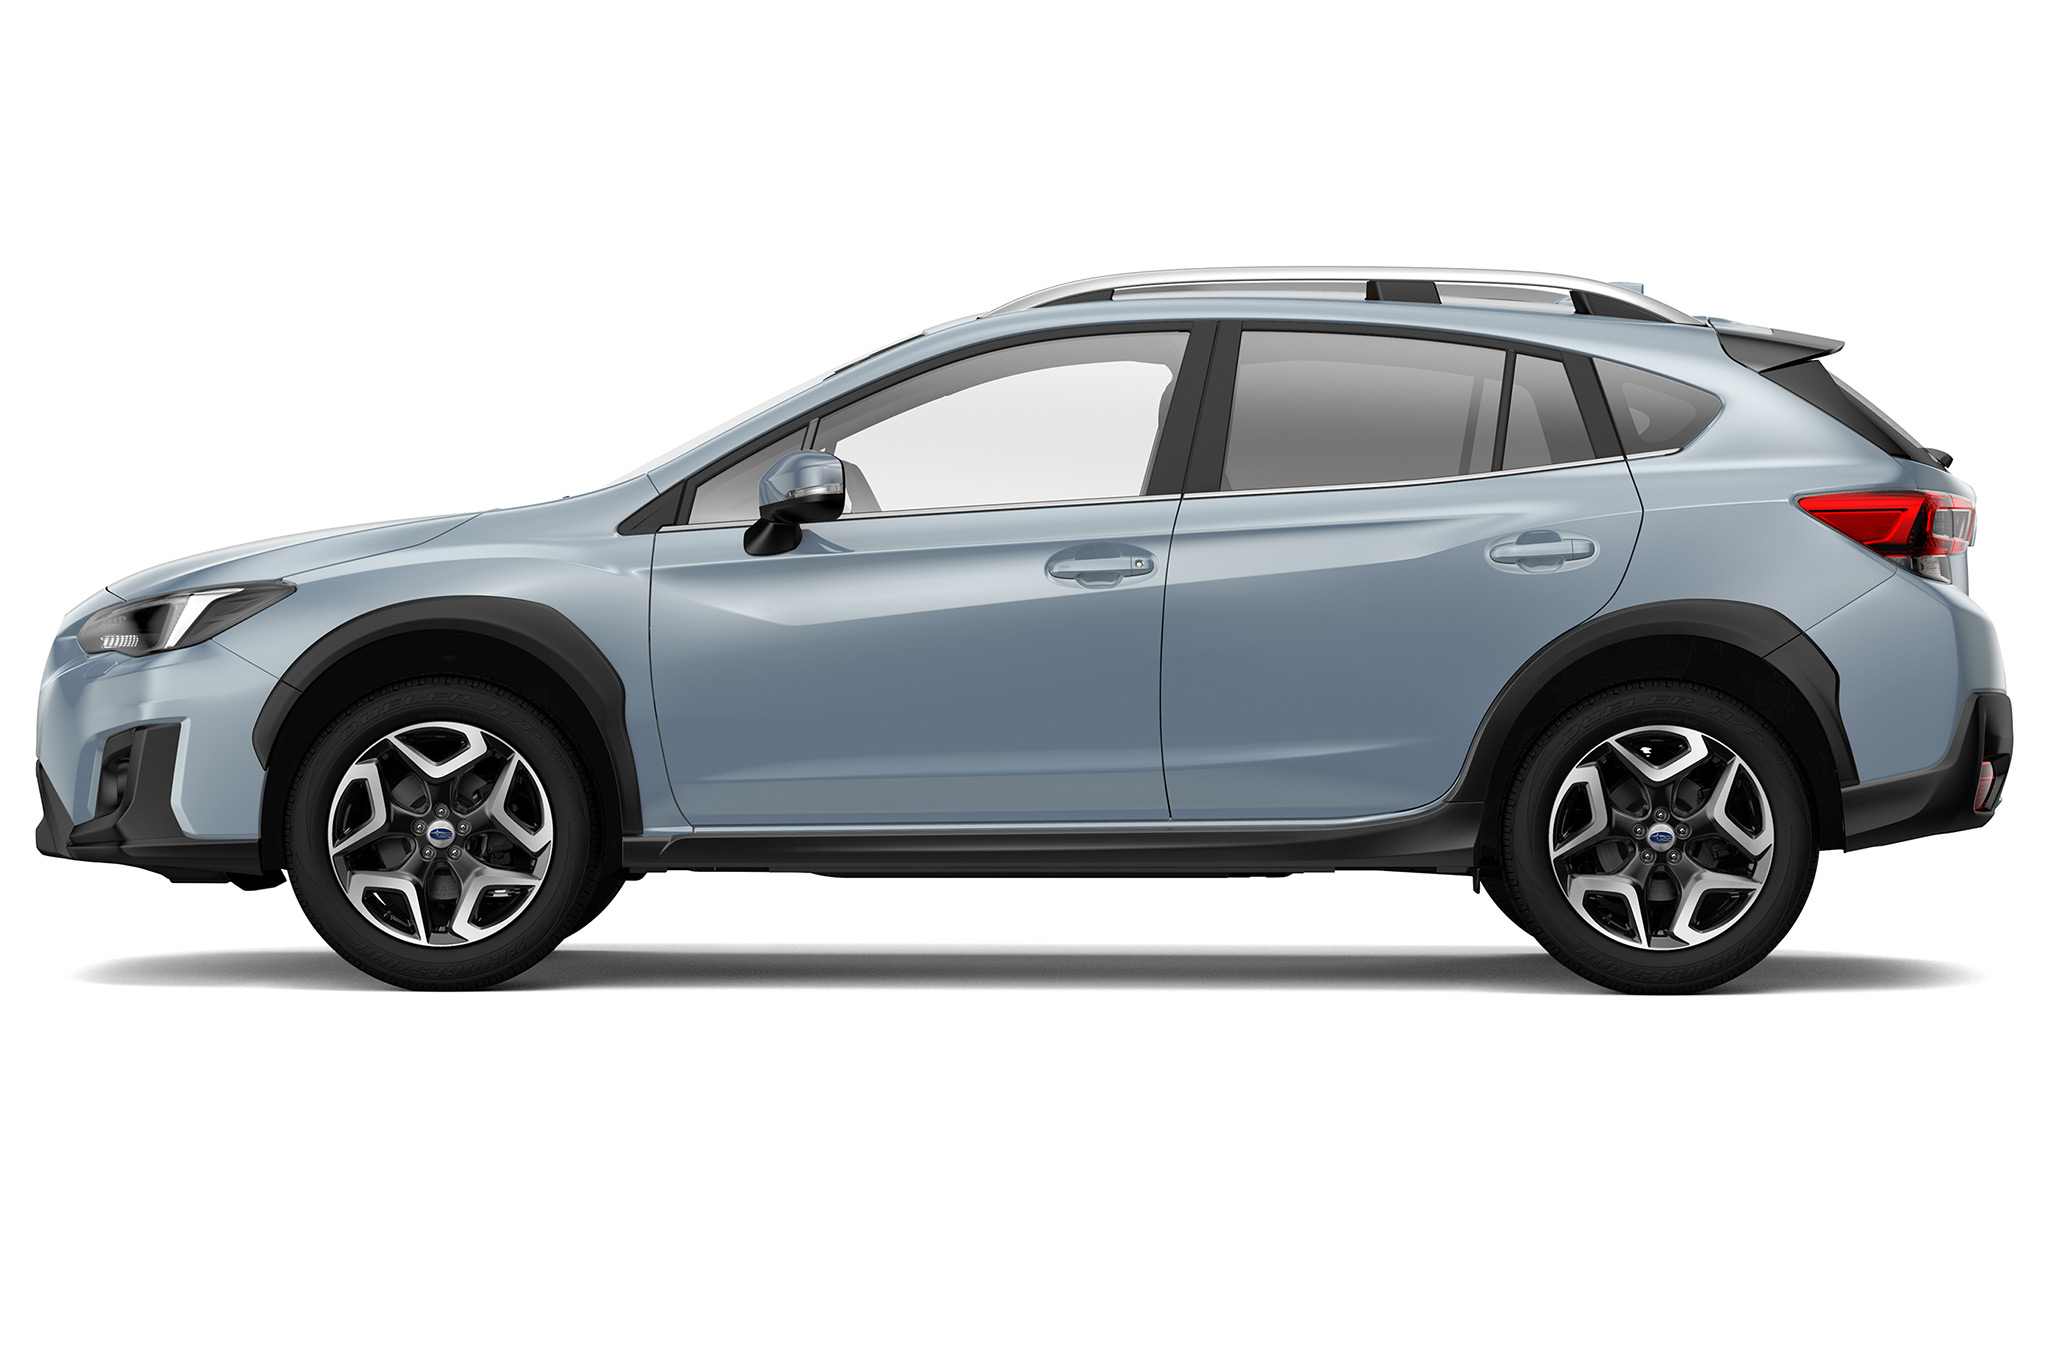 2018-Subaru-Crosstrek-Euro-Spec-side-view